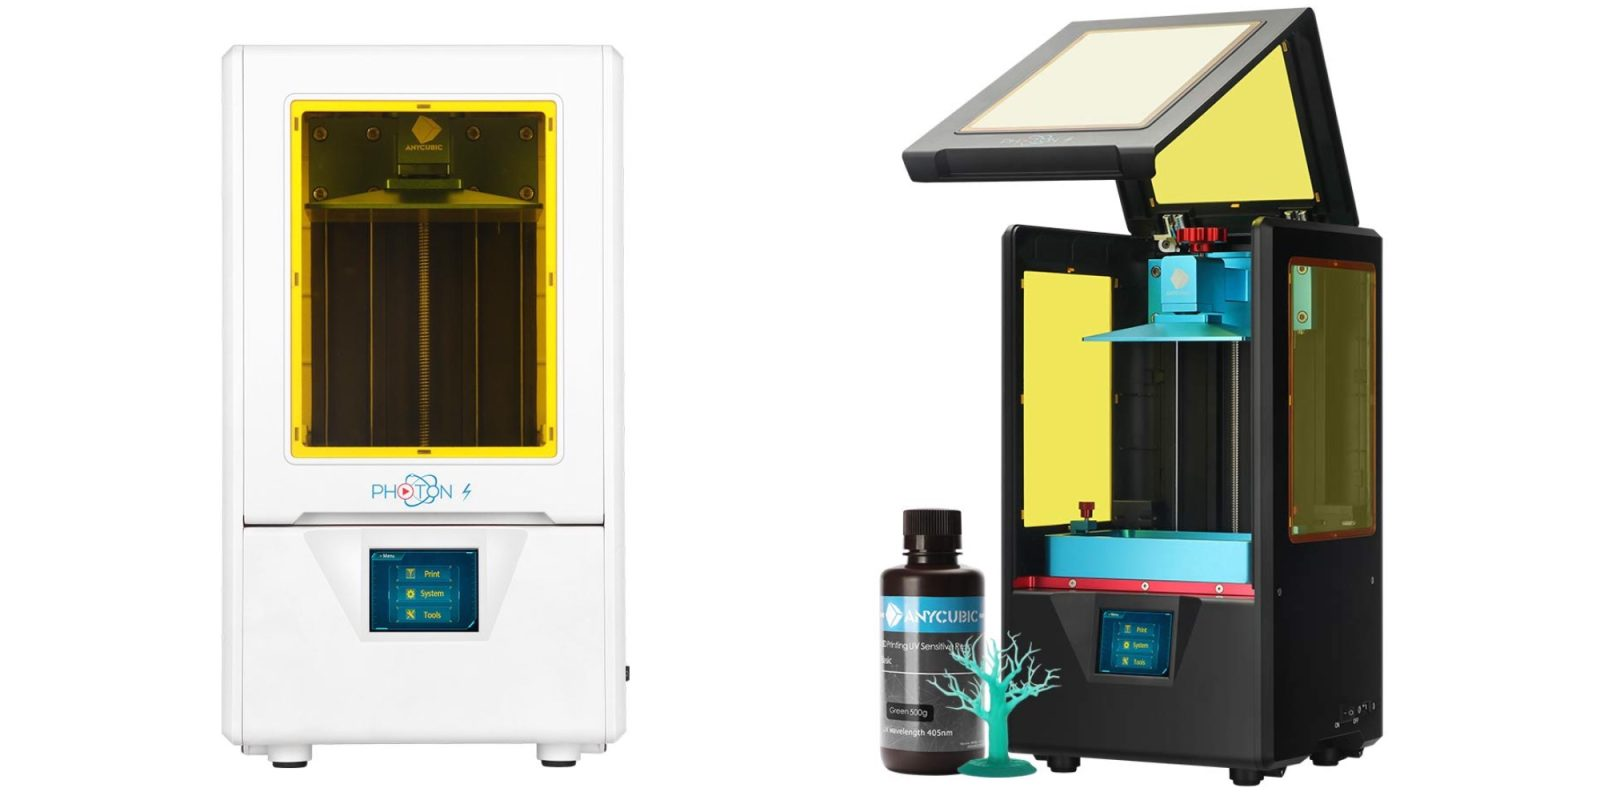 Anycubic's Photon S Resin 3D Printer gets $80 discount to $389 + 20% filament